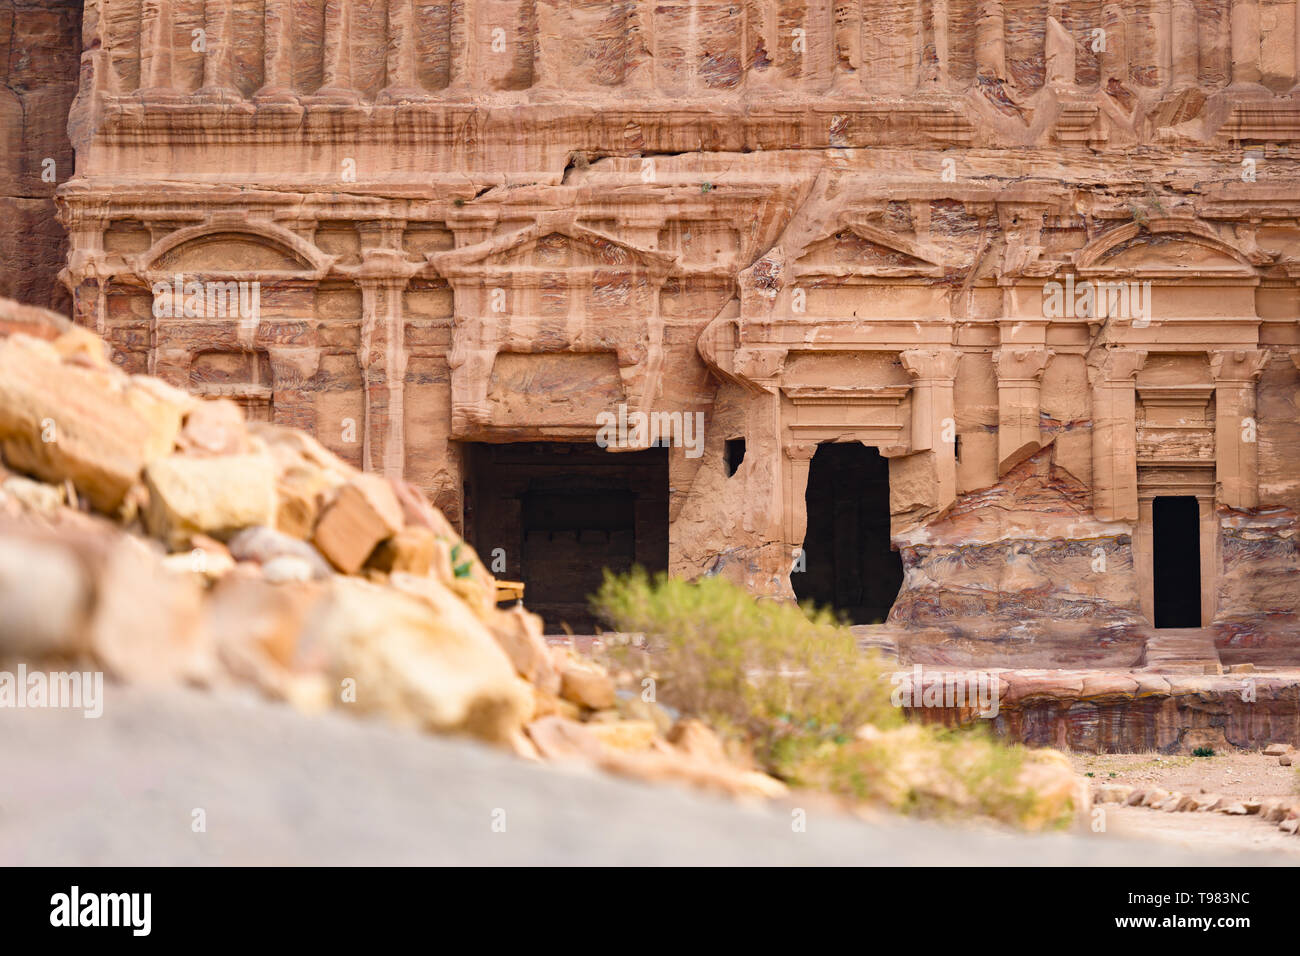 (Selective focus) Stunning view of a huge temple carved in stone in the beautiful Petra site. Stock Photo